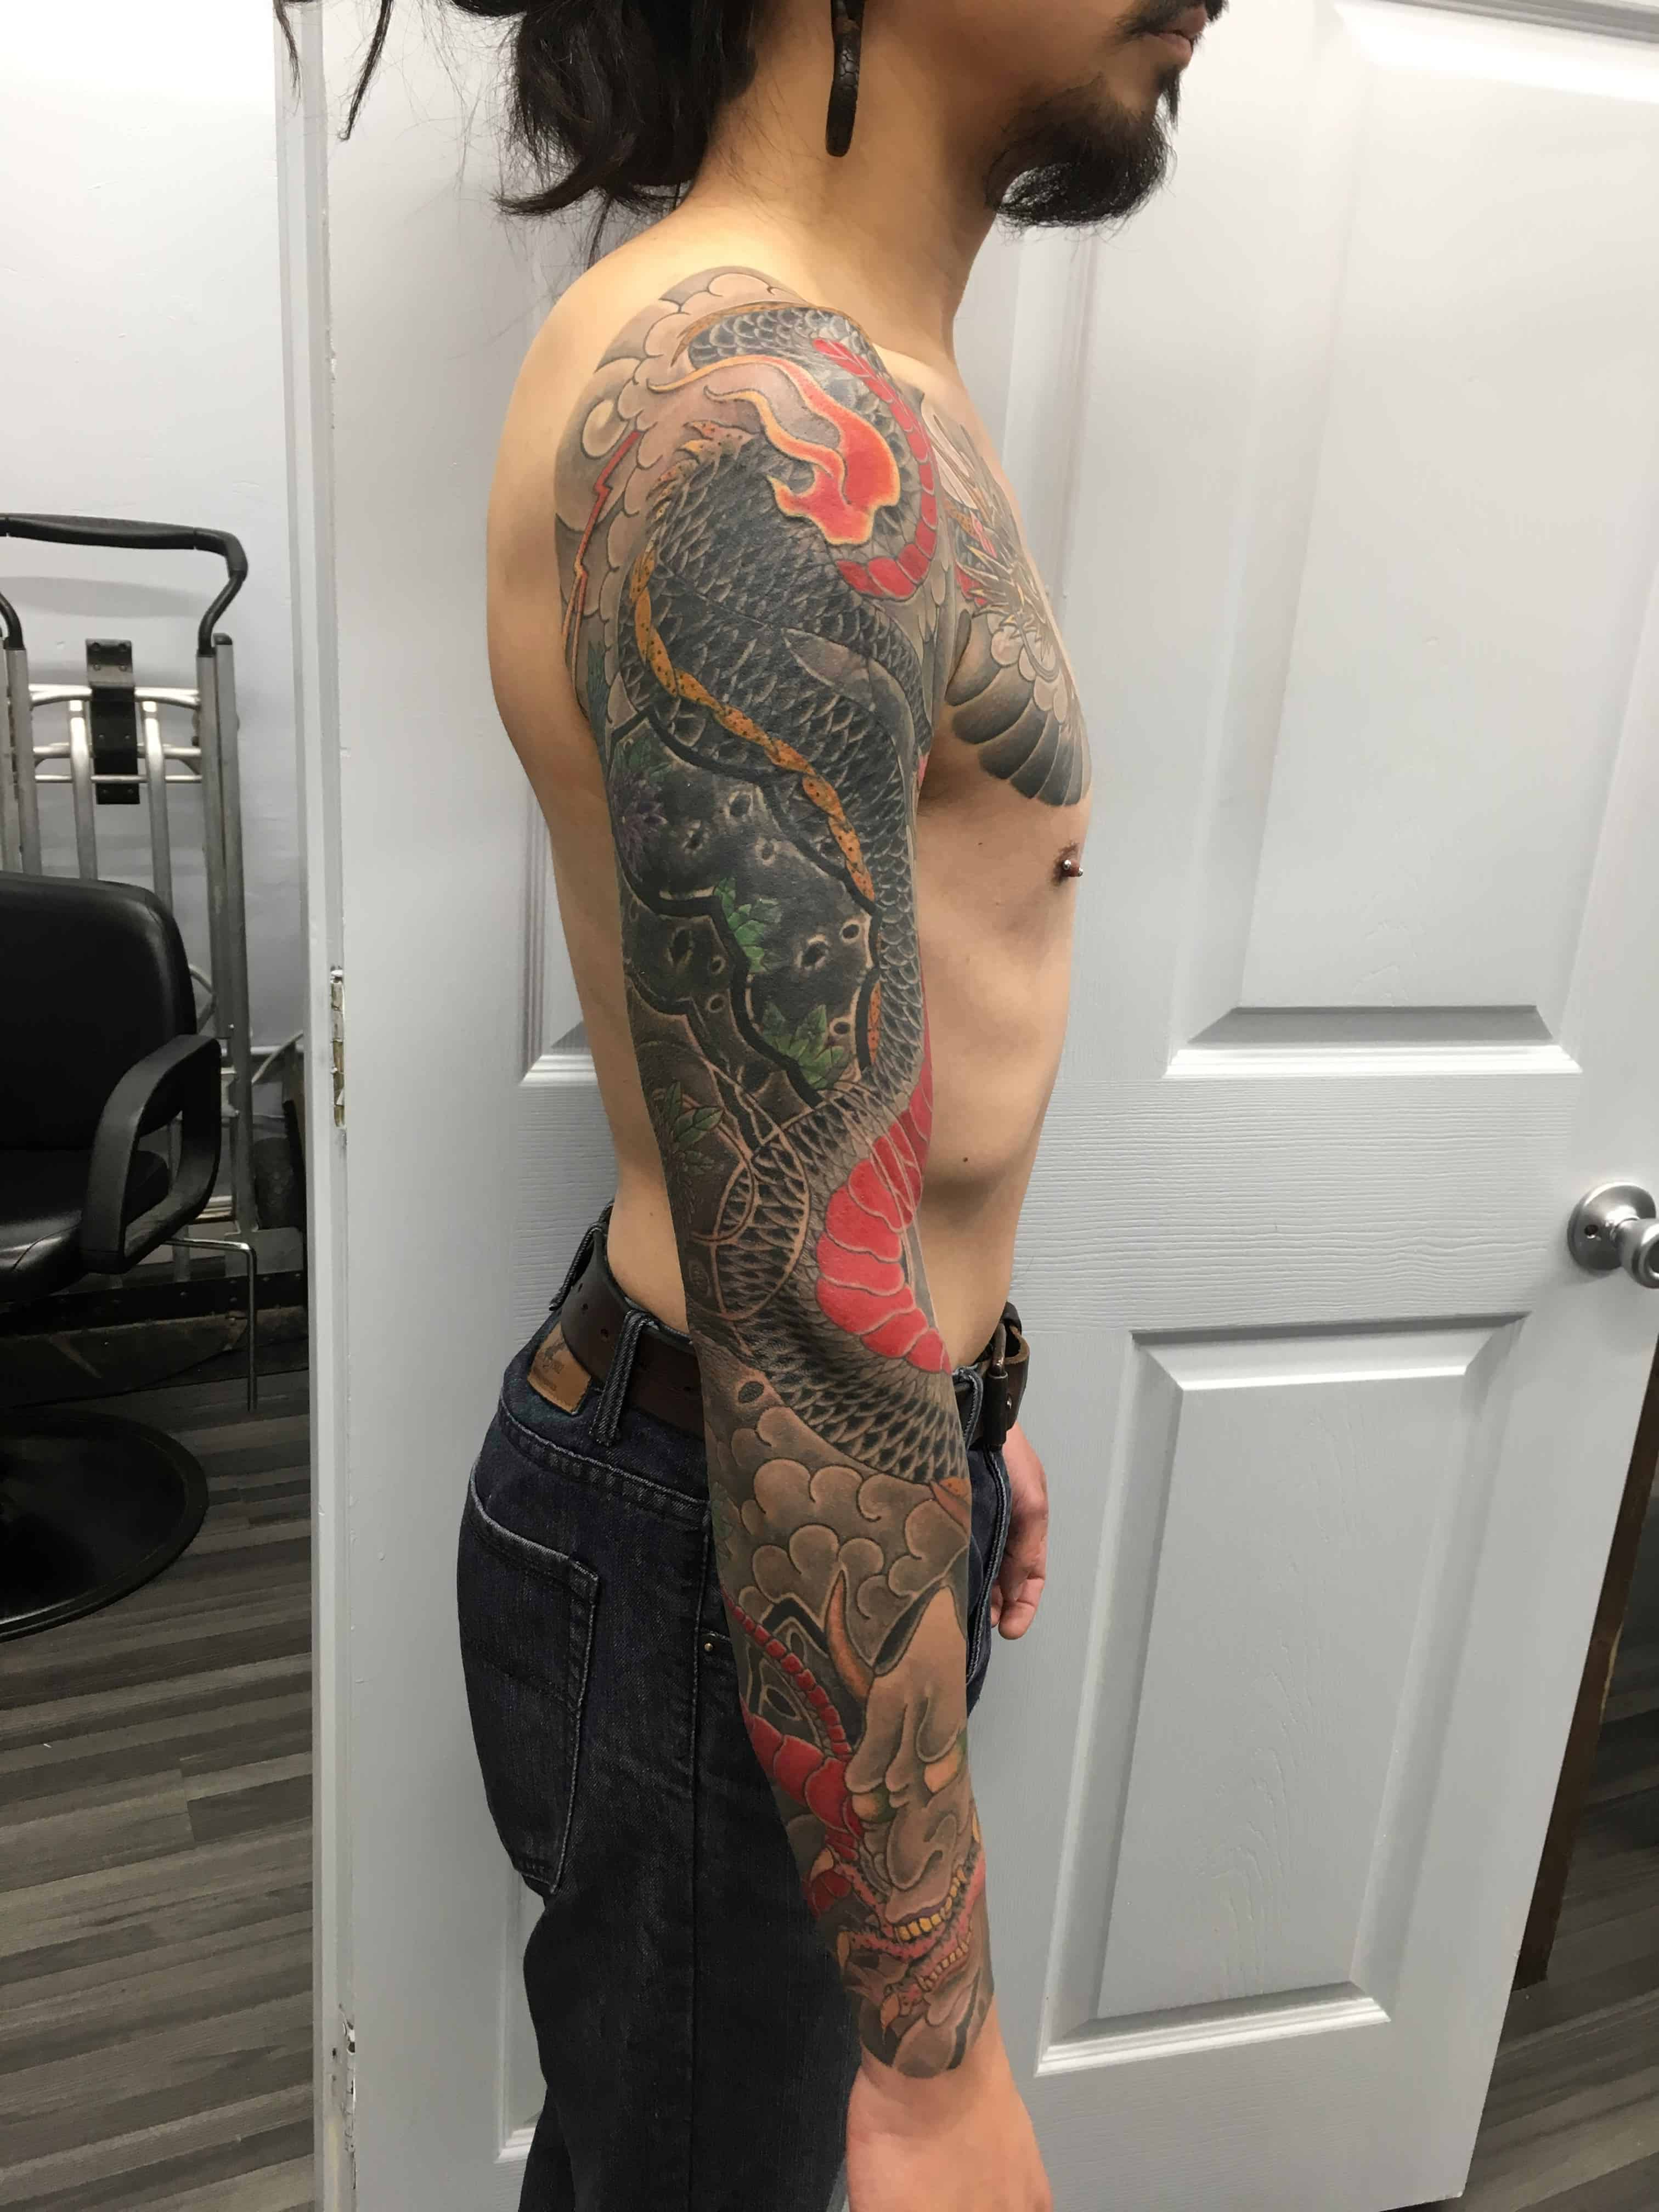 Cover-up-tattoo-of-Japanese-style-dragon-on-a-full-sleeve-by-Ei-Omiya